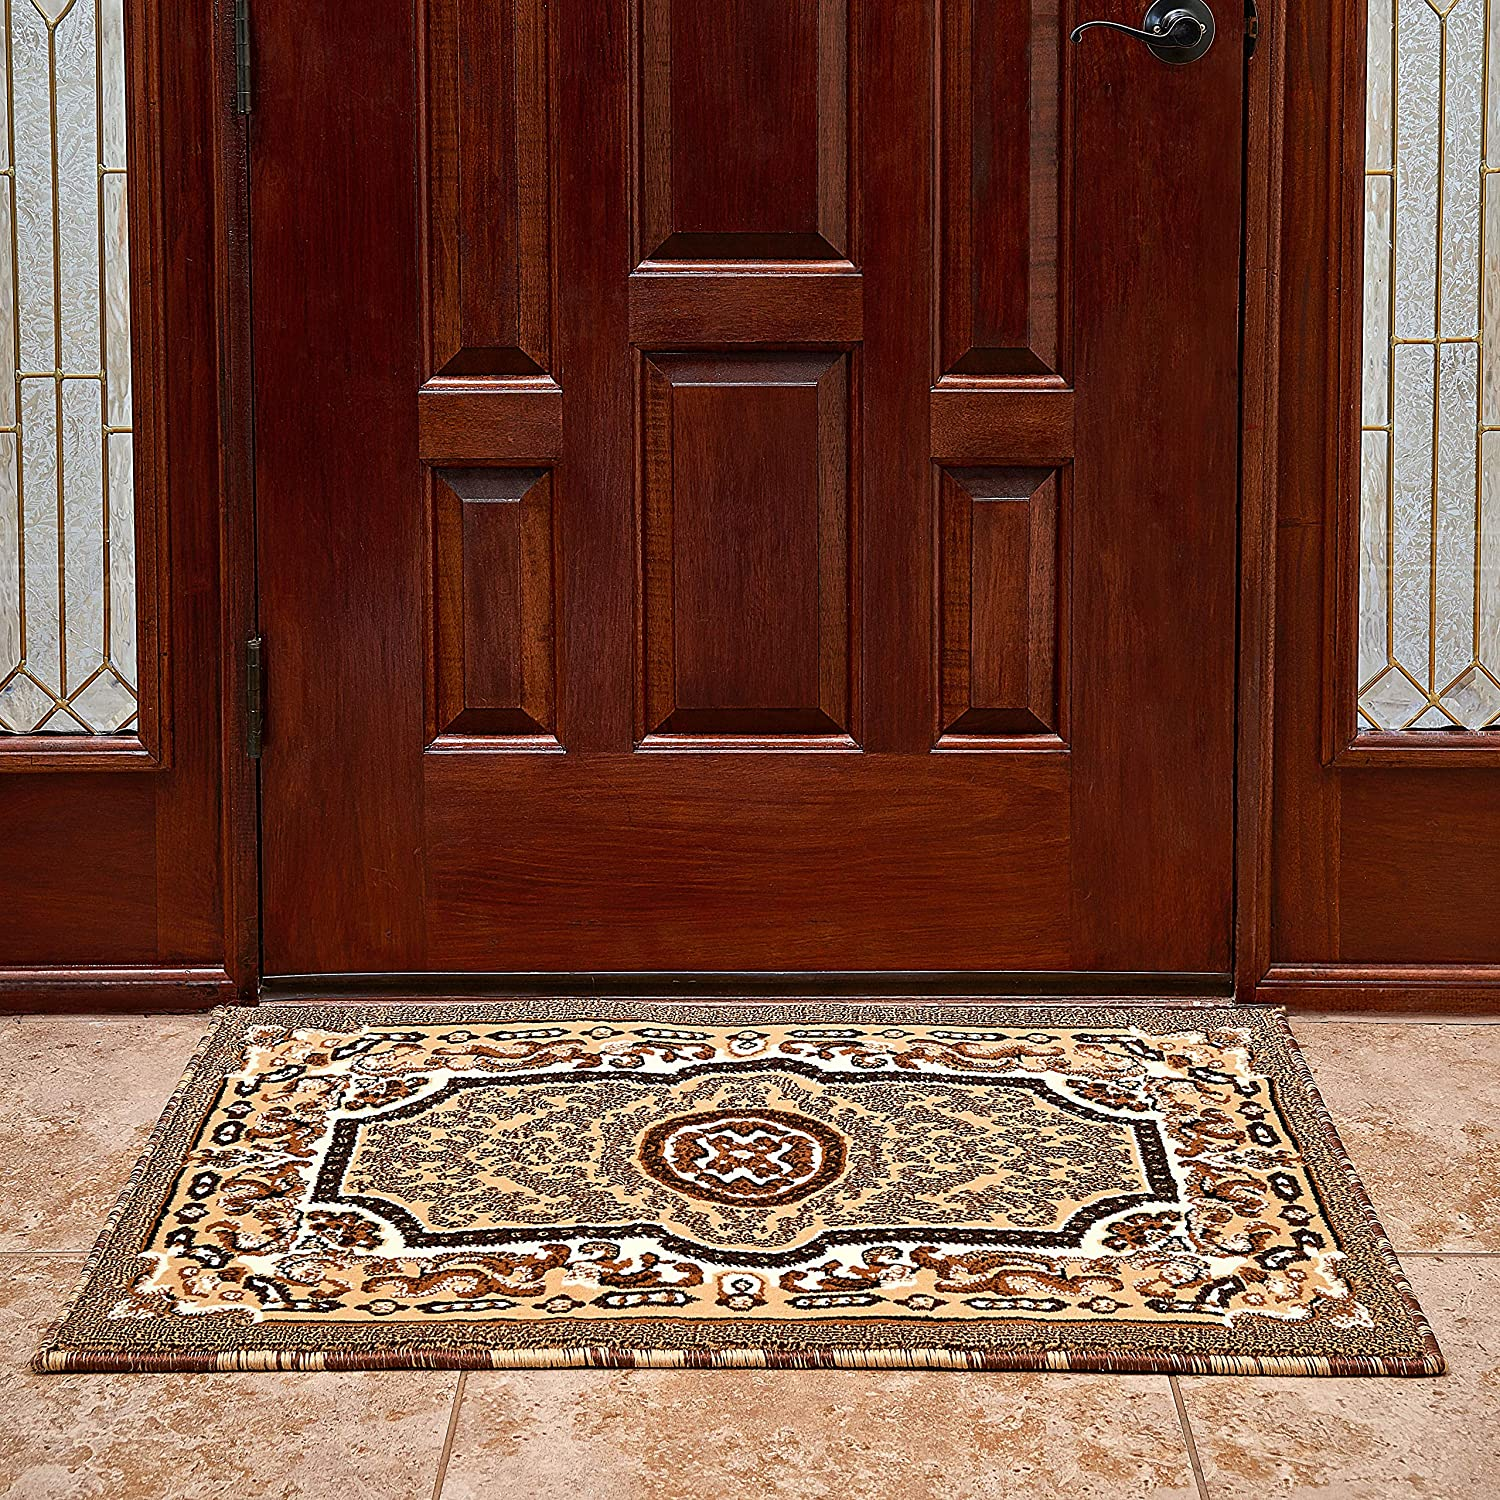 Cosy House Front Door Mat for Inside, Indoor Doormats for Entryway - Waterproof Low Profile Entrance Way Rug - Resist Stains, Soil, Fading, Freying - Natural Jute Backing | 24